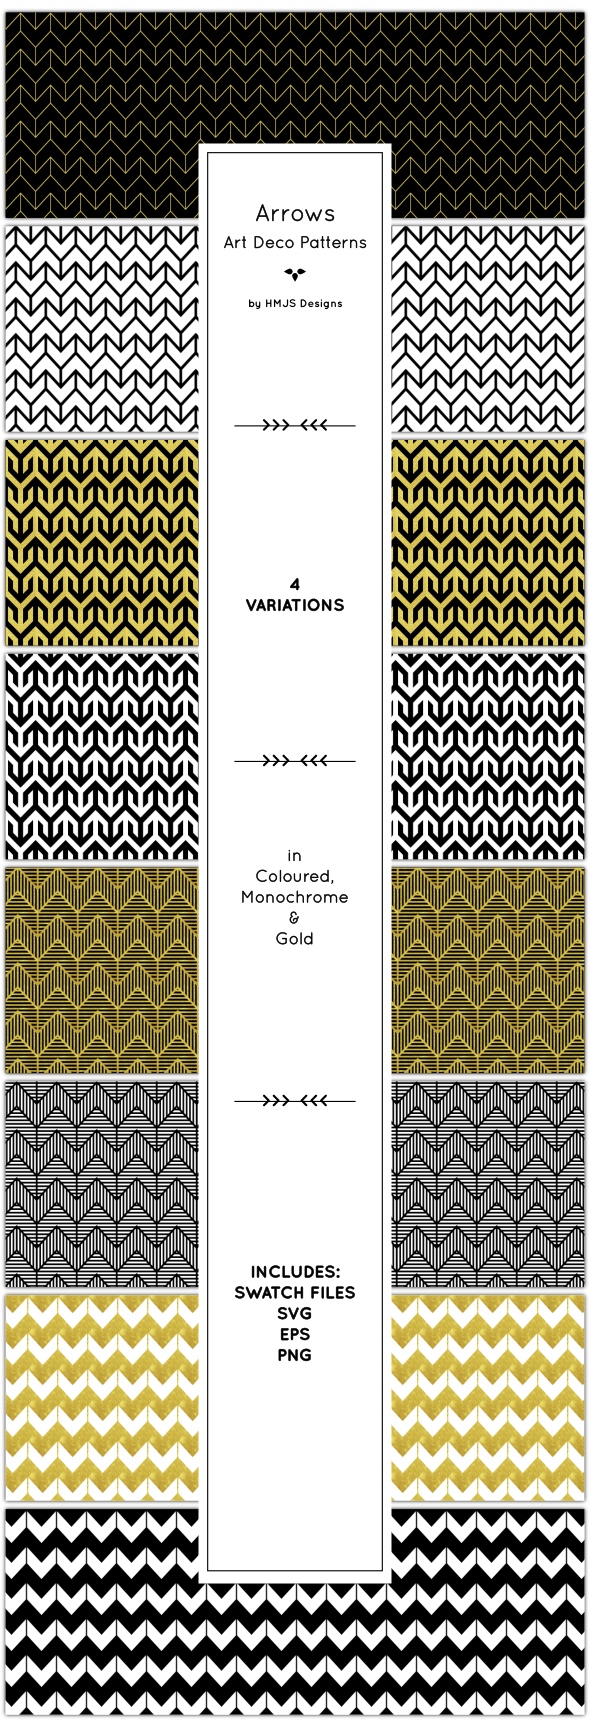 Arrow Patterns - Textures / Fills / Patterns Illustrator